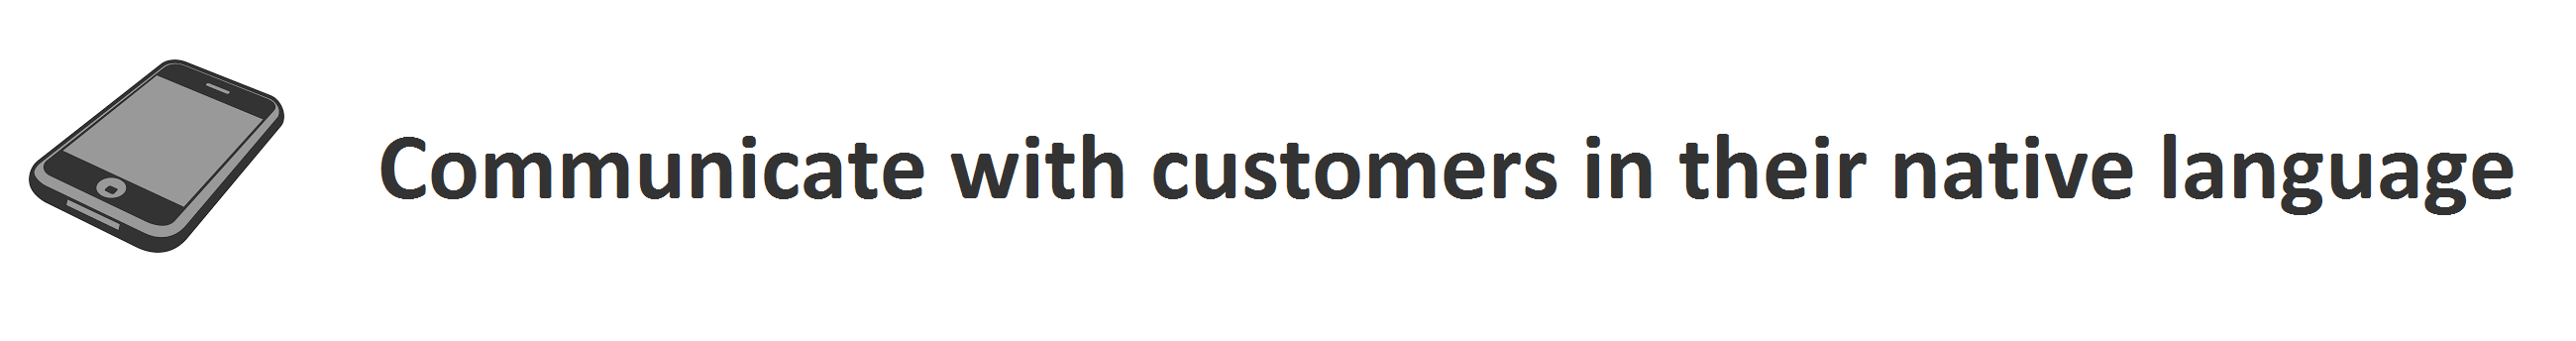 """iPhone icon next to text reading: """"Communicate with customers in their native language"""""""